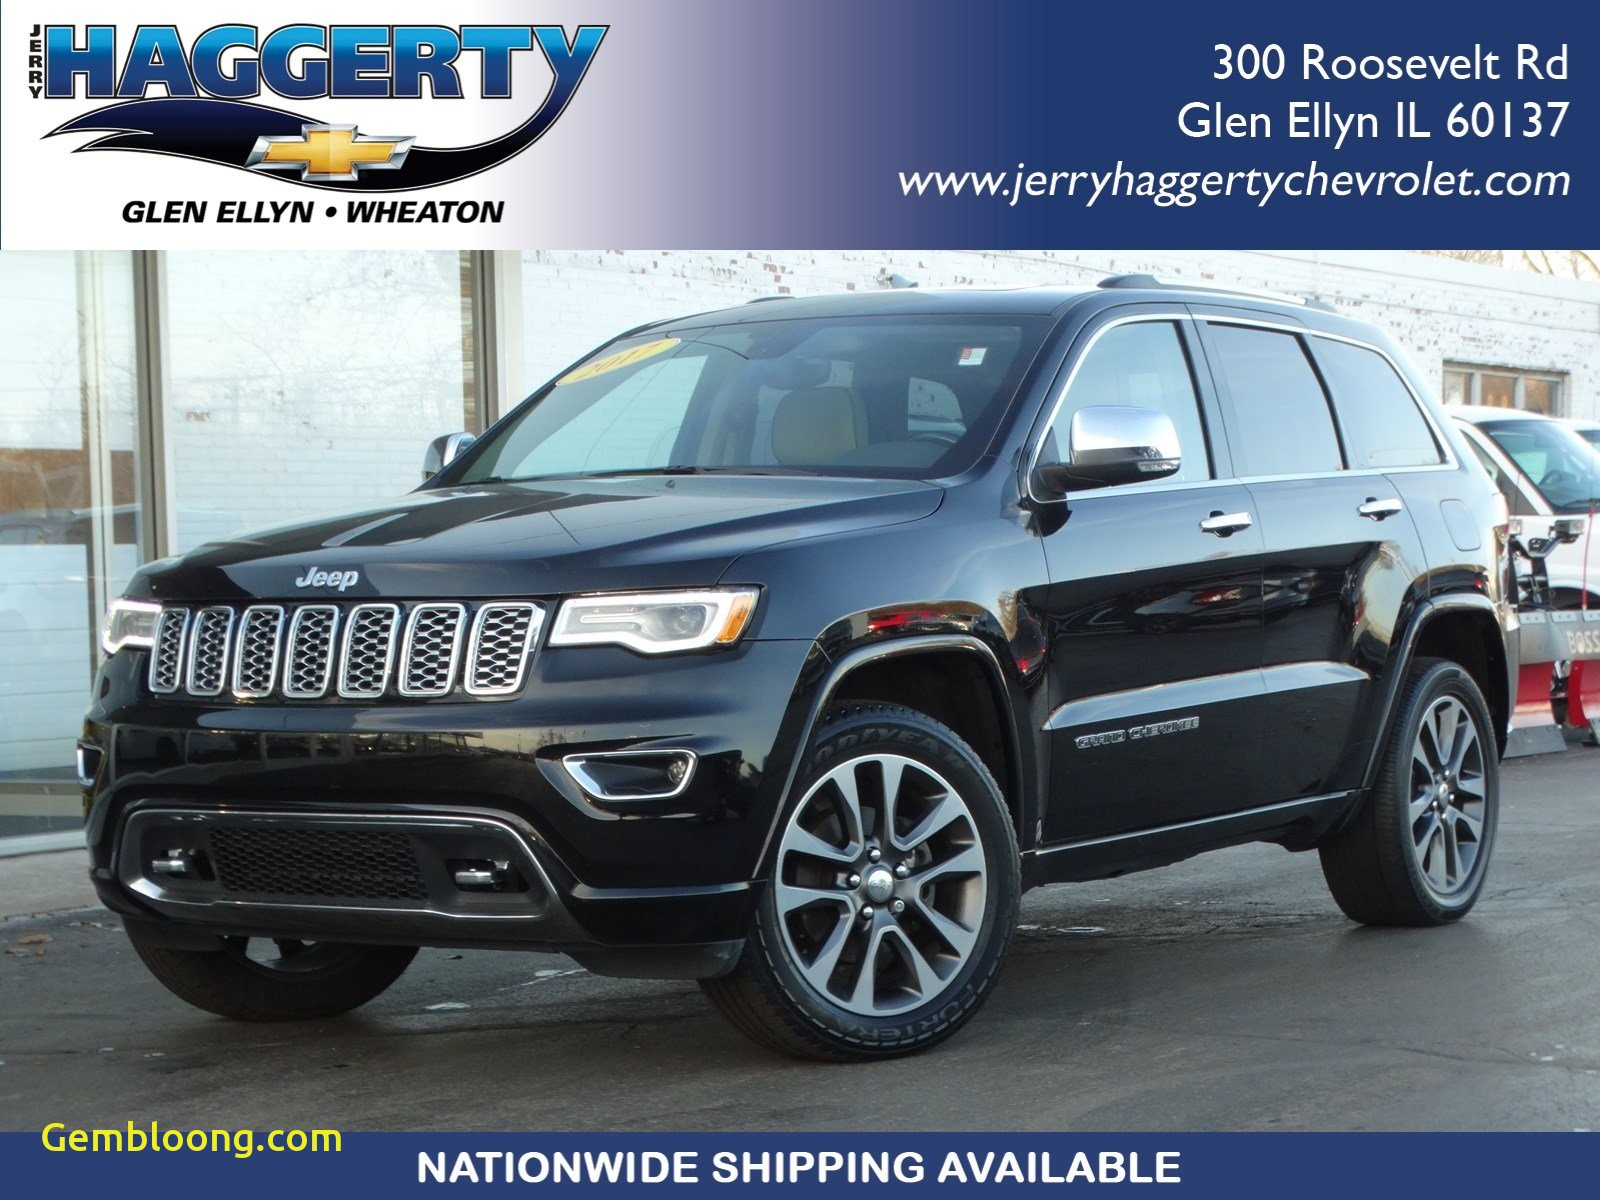 2017 Jeep Grand Cherokee Limited Elegant Pre Owned 2017 Jeep Grand Cherokee Overland with Navigation & 4wd